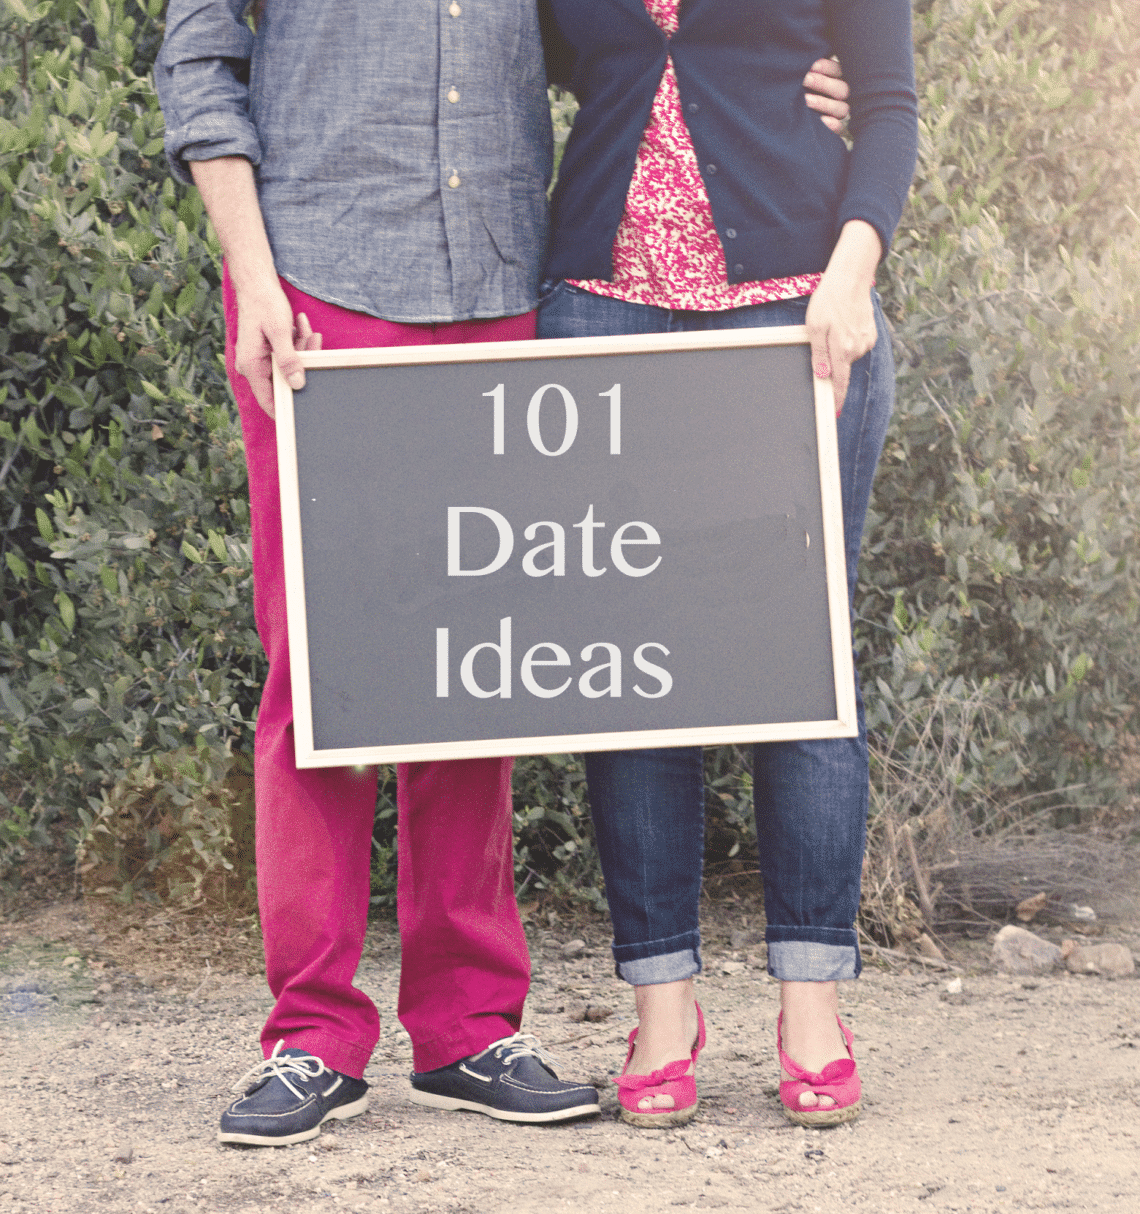 Lds creative dating ideas